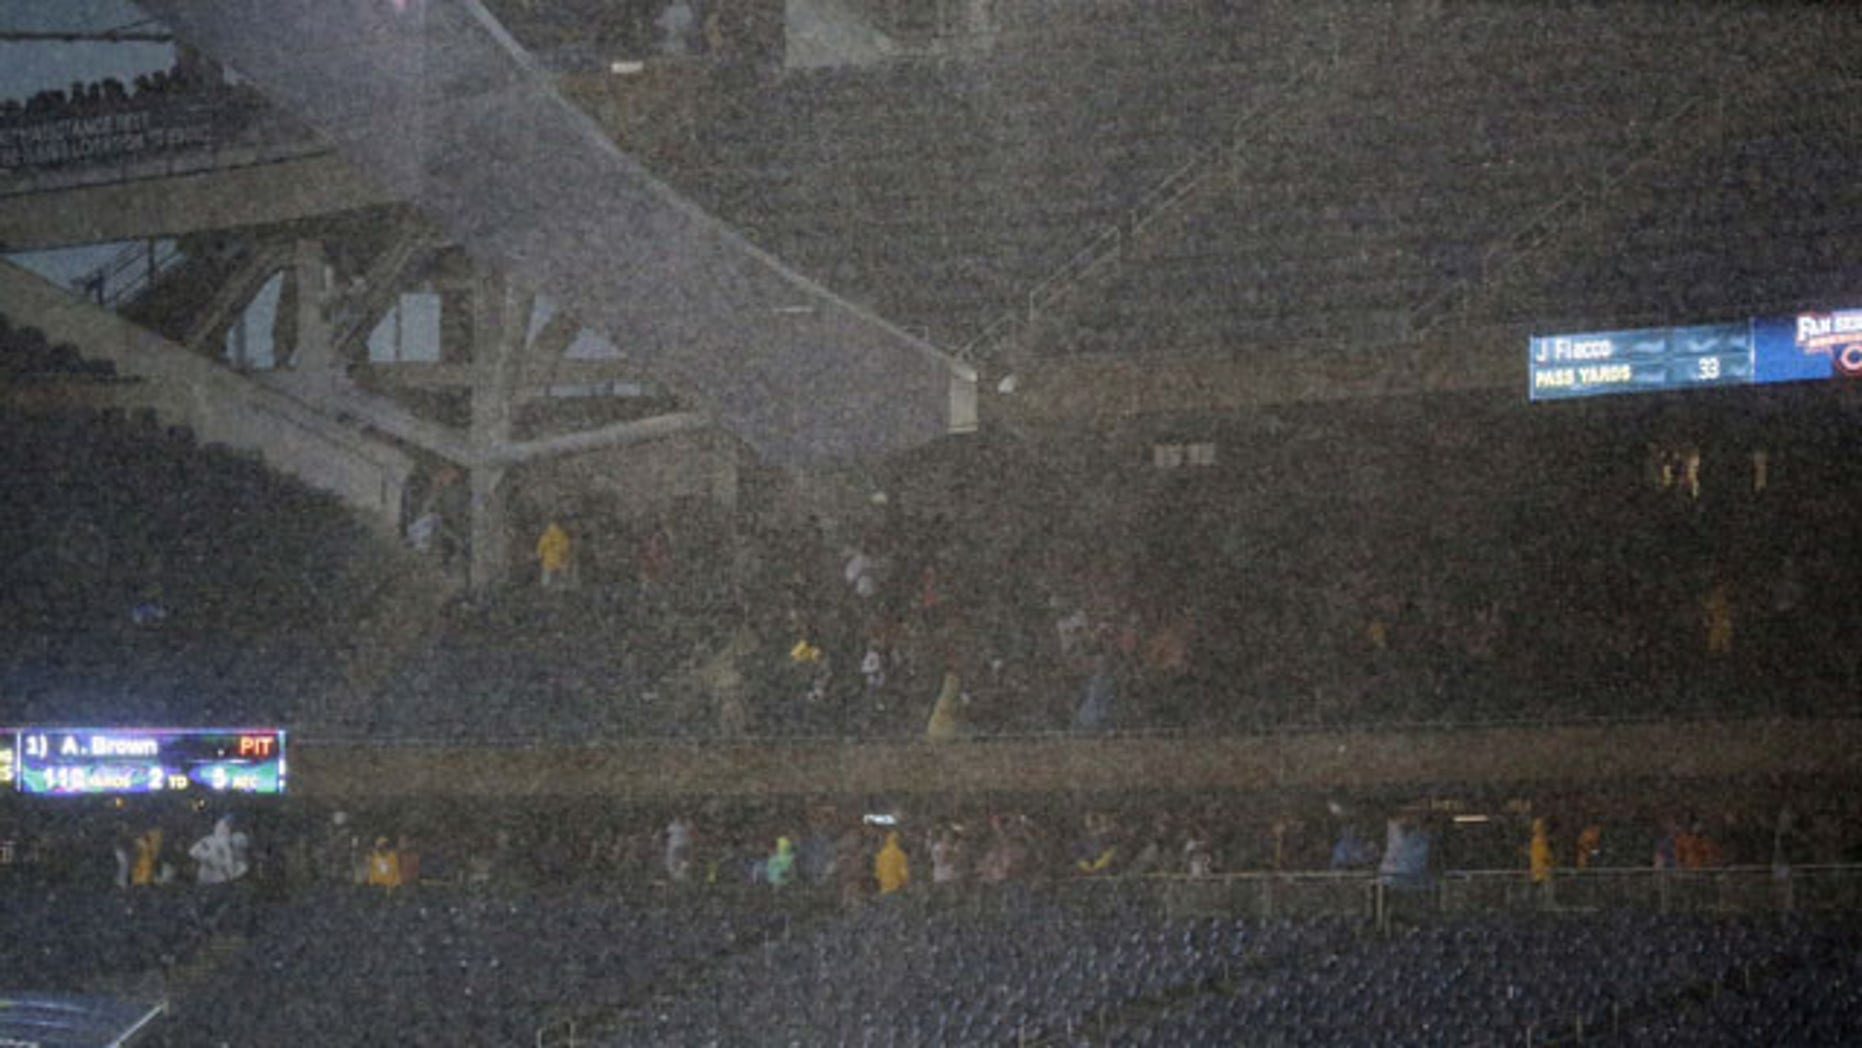 November 17, 2013: Fan seek shelter under the stands as a severe storm blows over Soldier Field in Chicago during the first half of an NFL football game between the Chicago Bears and Baltimore Ravens. (AP Photo)